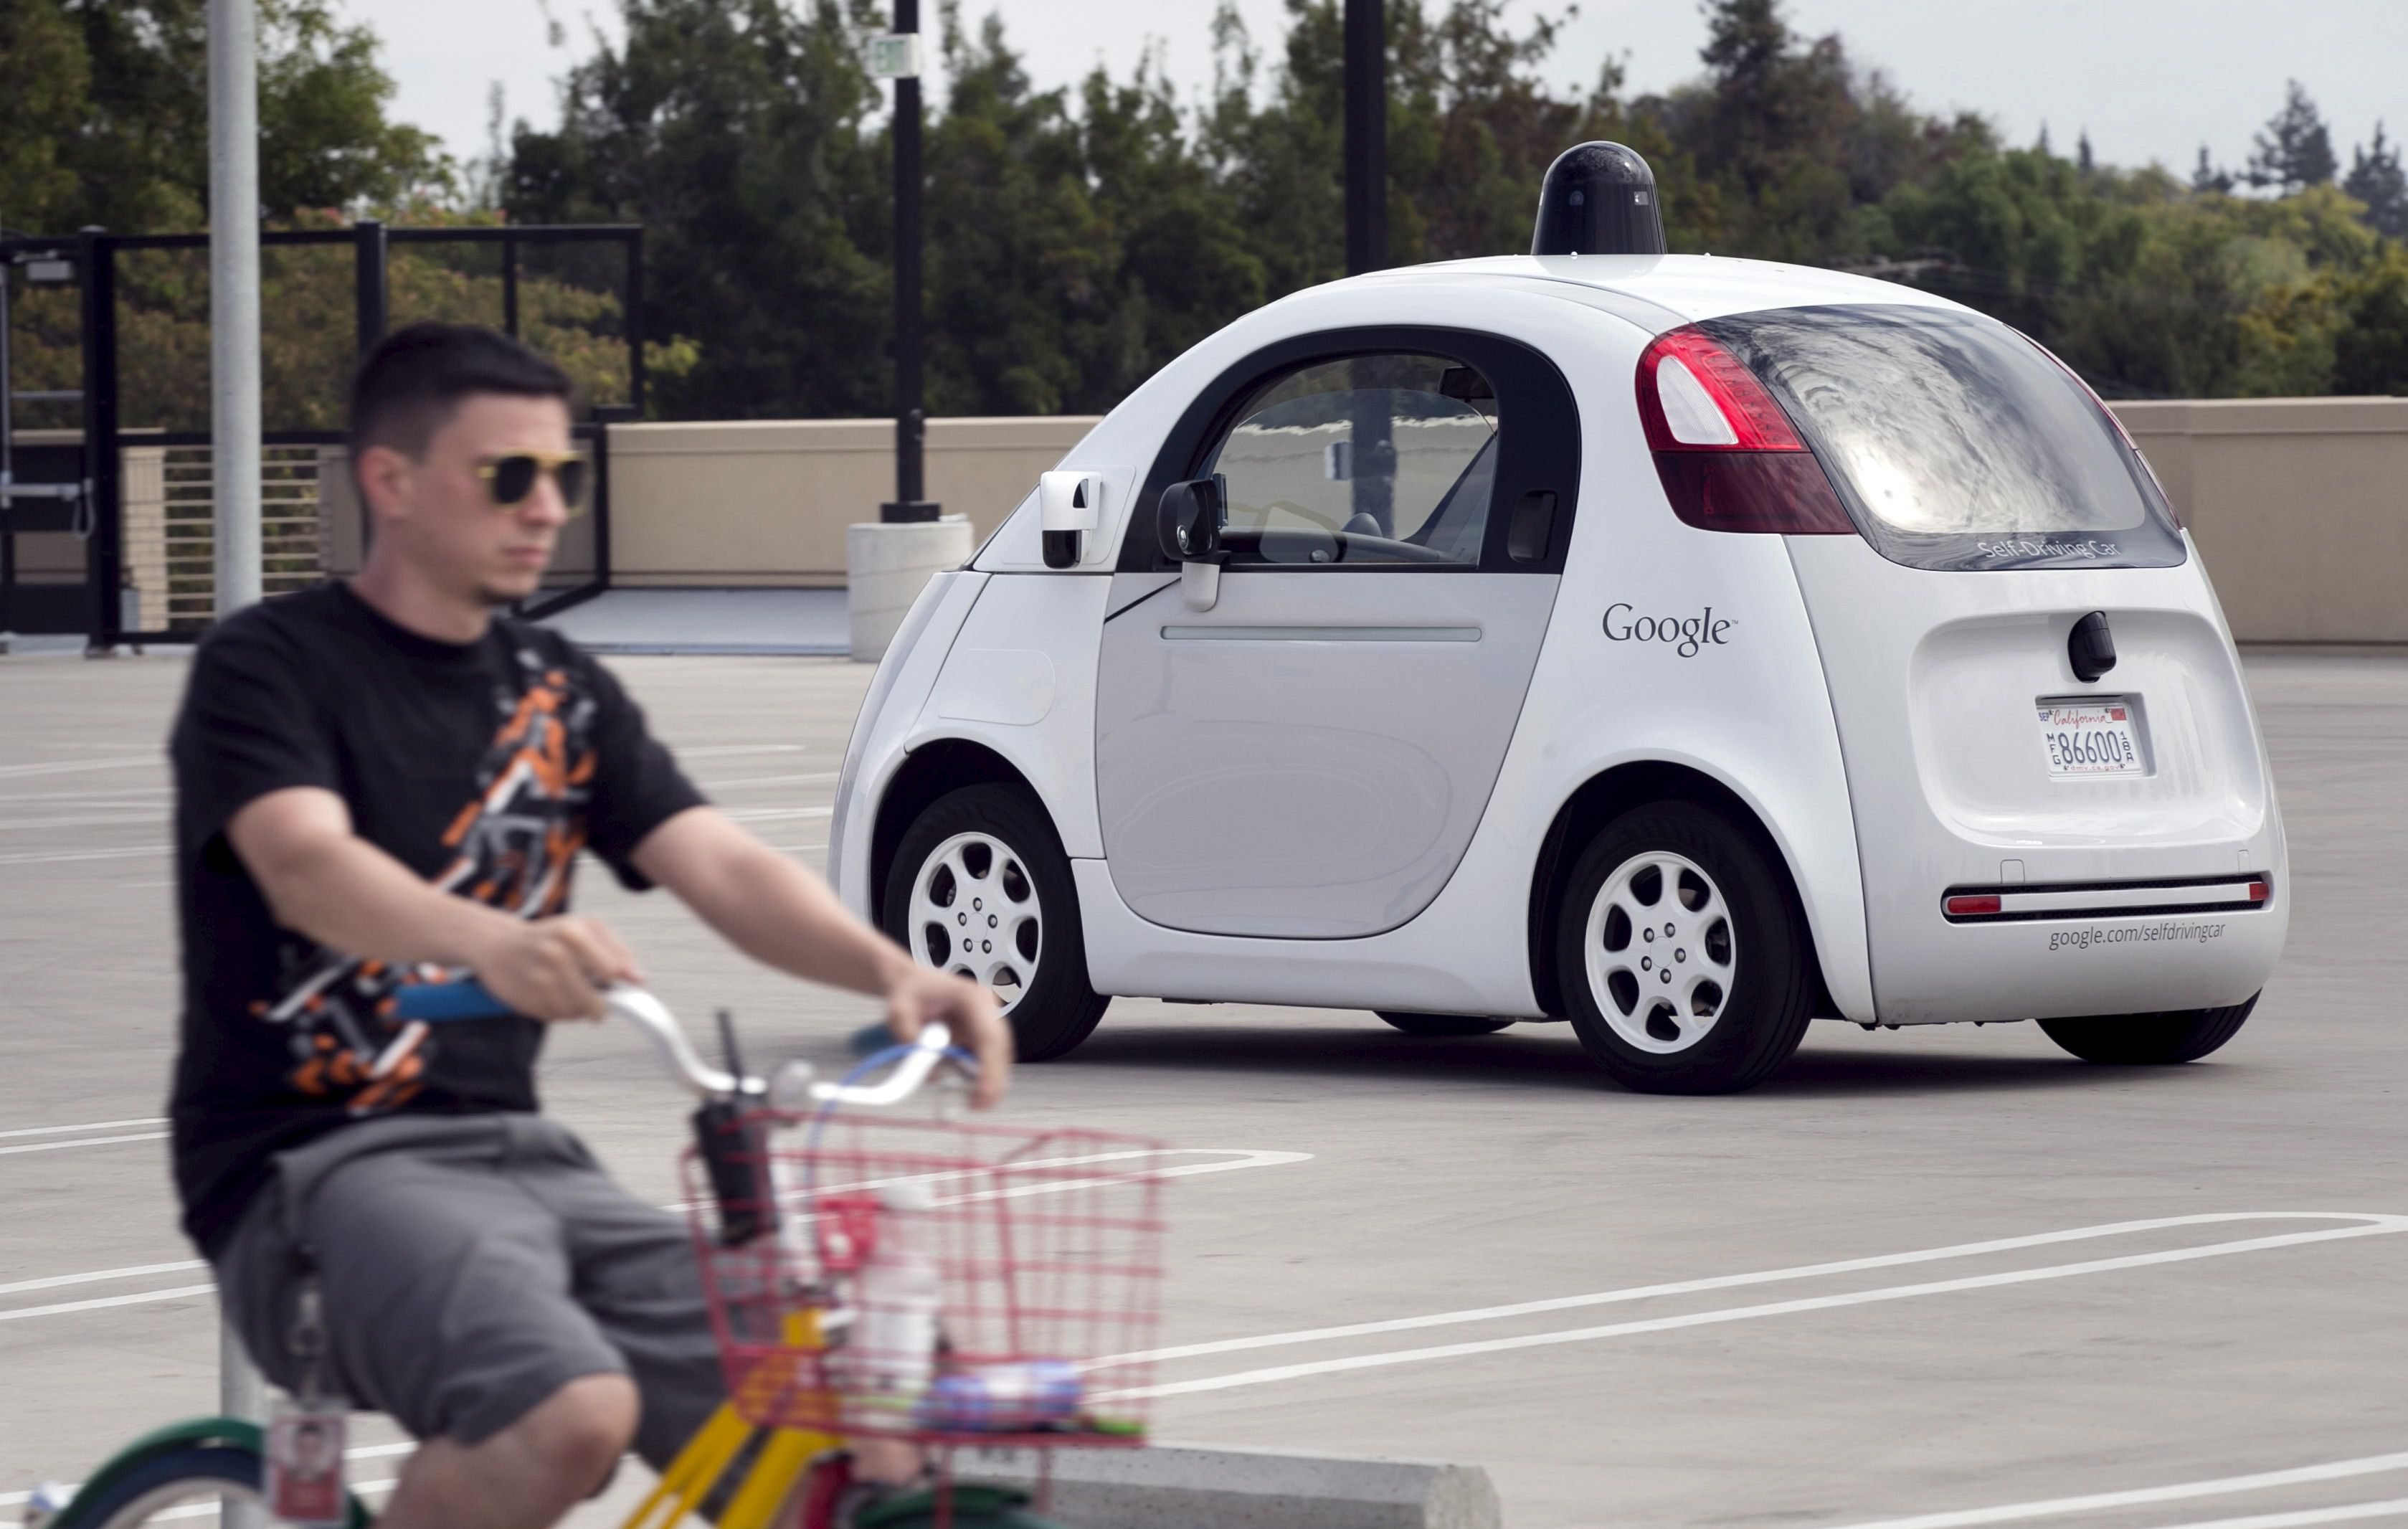 A Google employee on a bicycle acts as a real-life obstacle for a Google self-driving prototype car to react to during a media preview of Google's prototype autonomous vehicles in Mountain View, California September 29, 2015.  REUTERS/Elijah Nouvelage - RTS2BZN